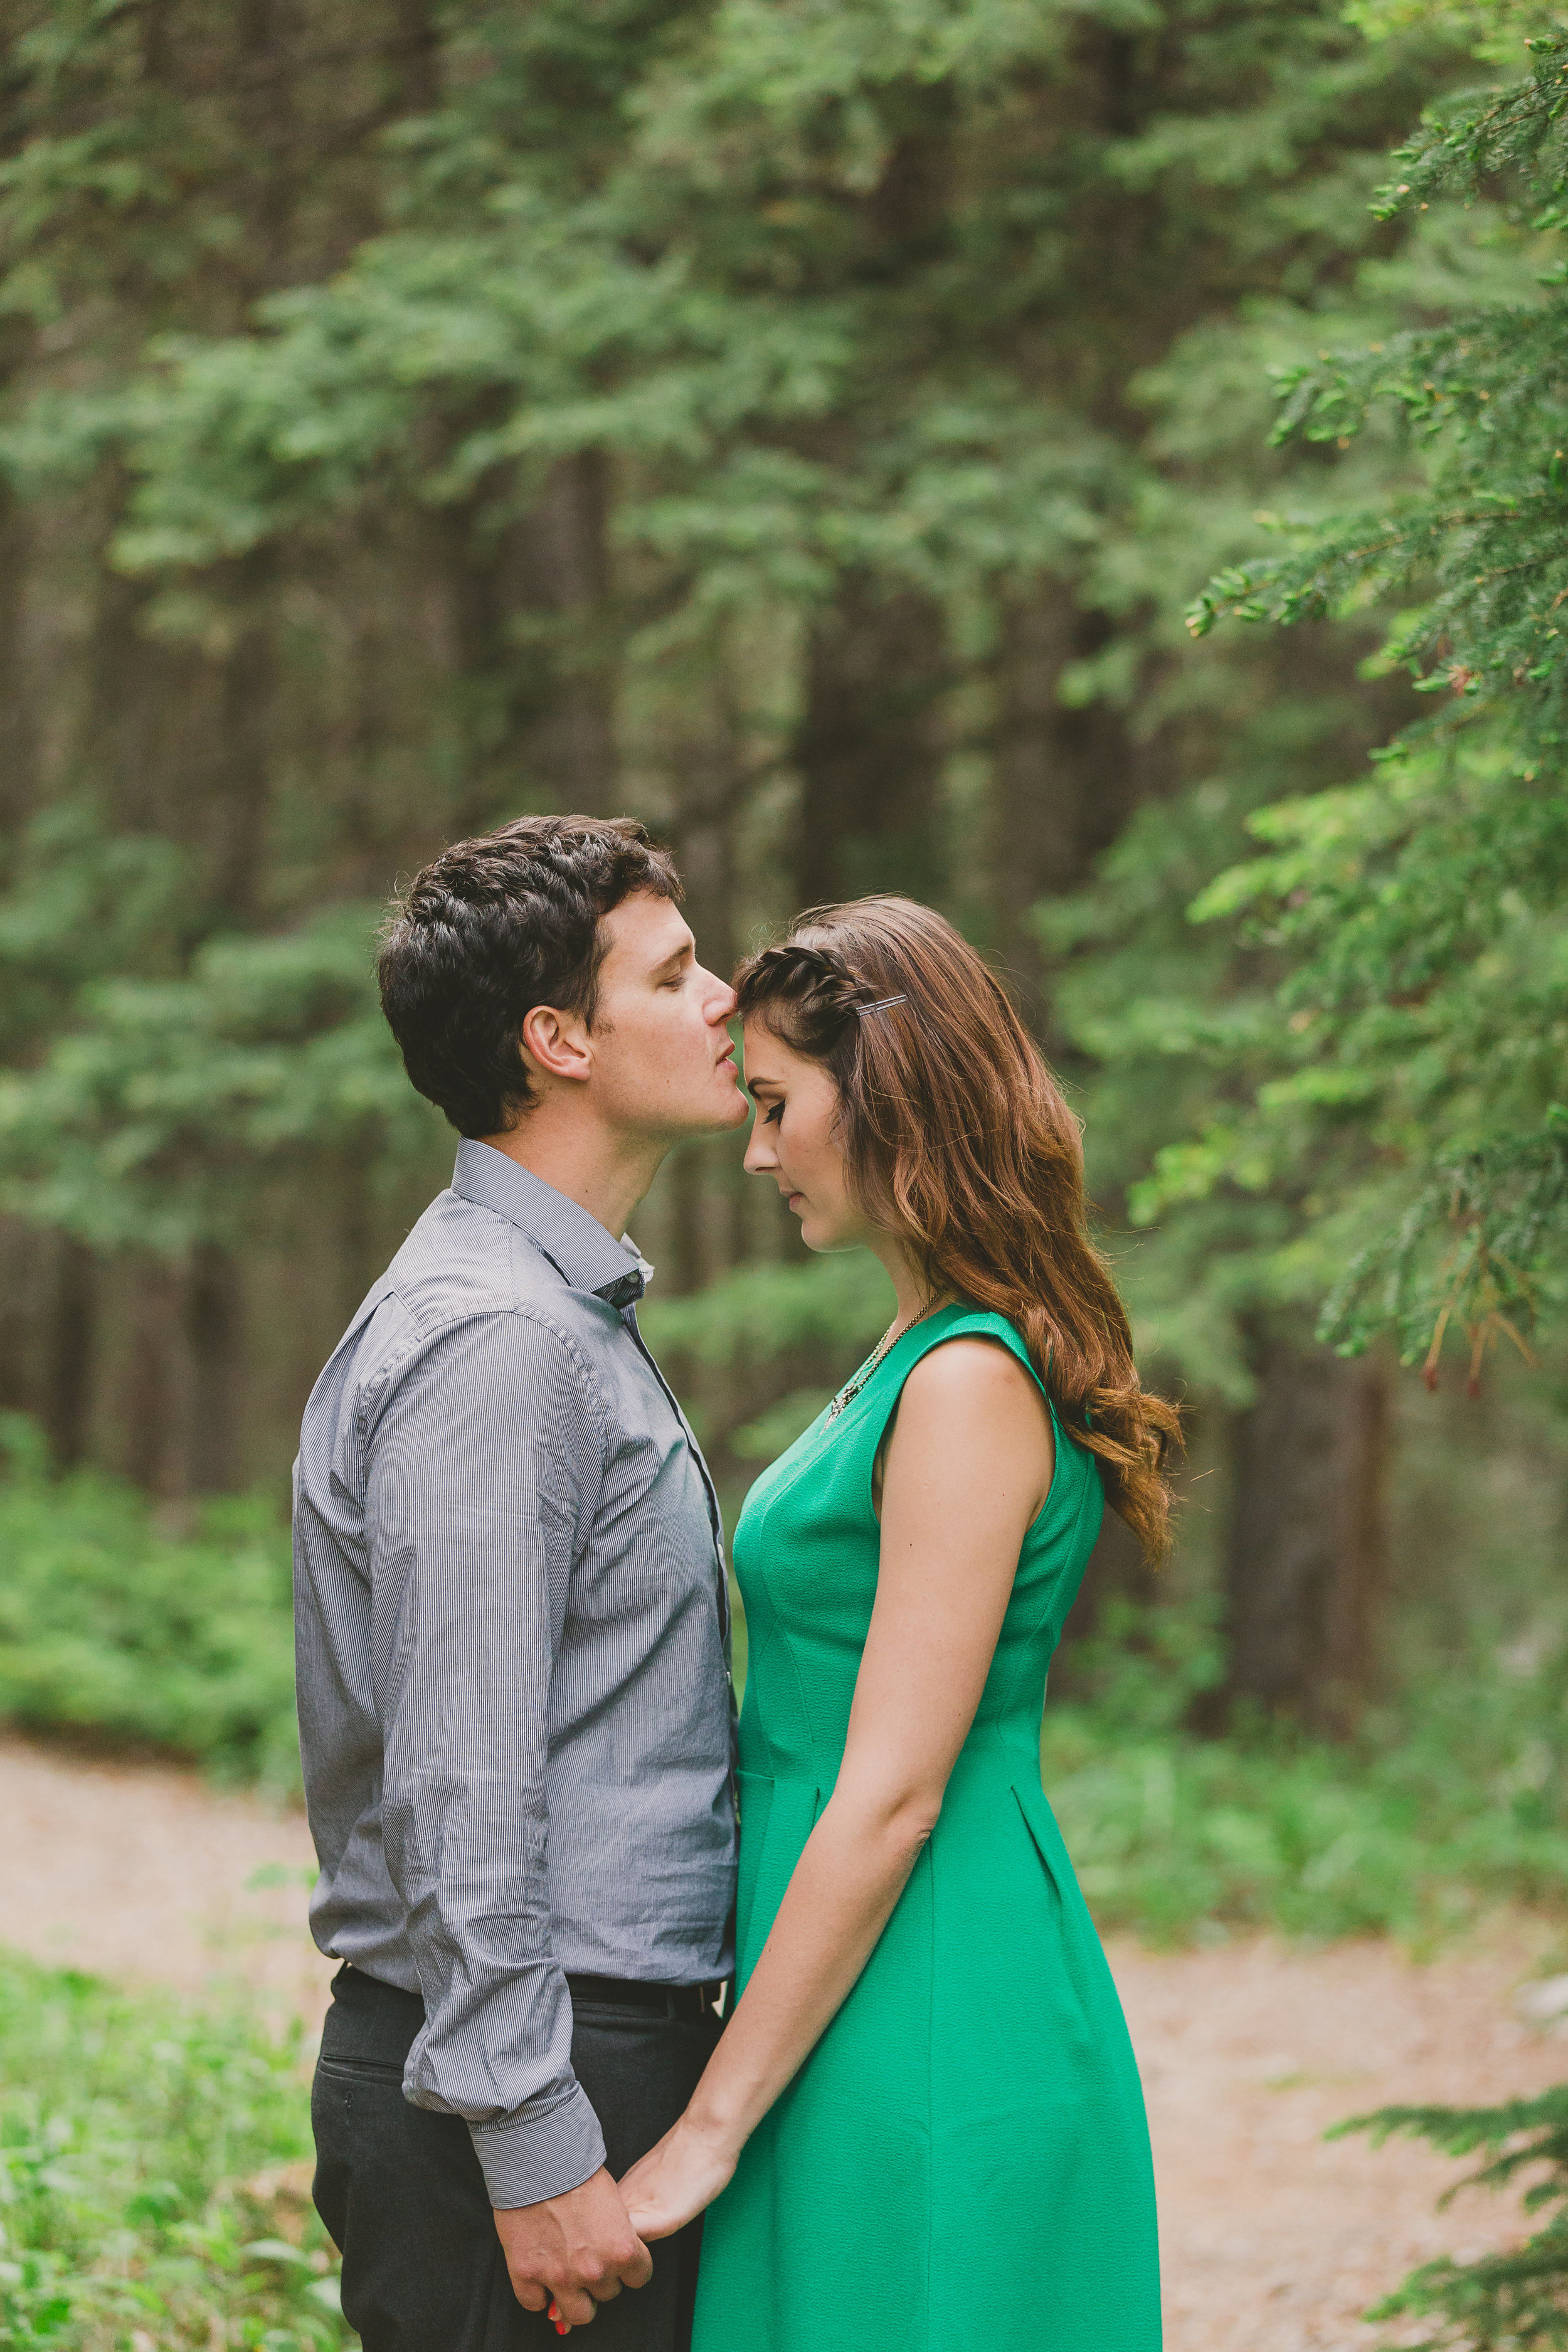 EngagementIza&Matthew (106 of 211).jpg